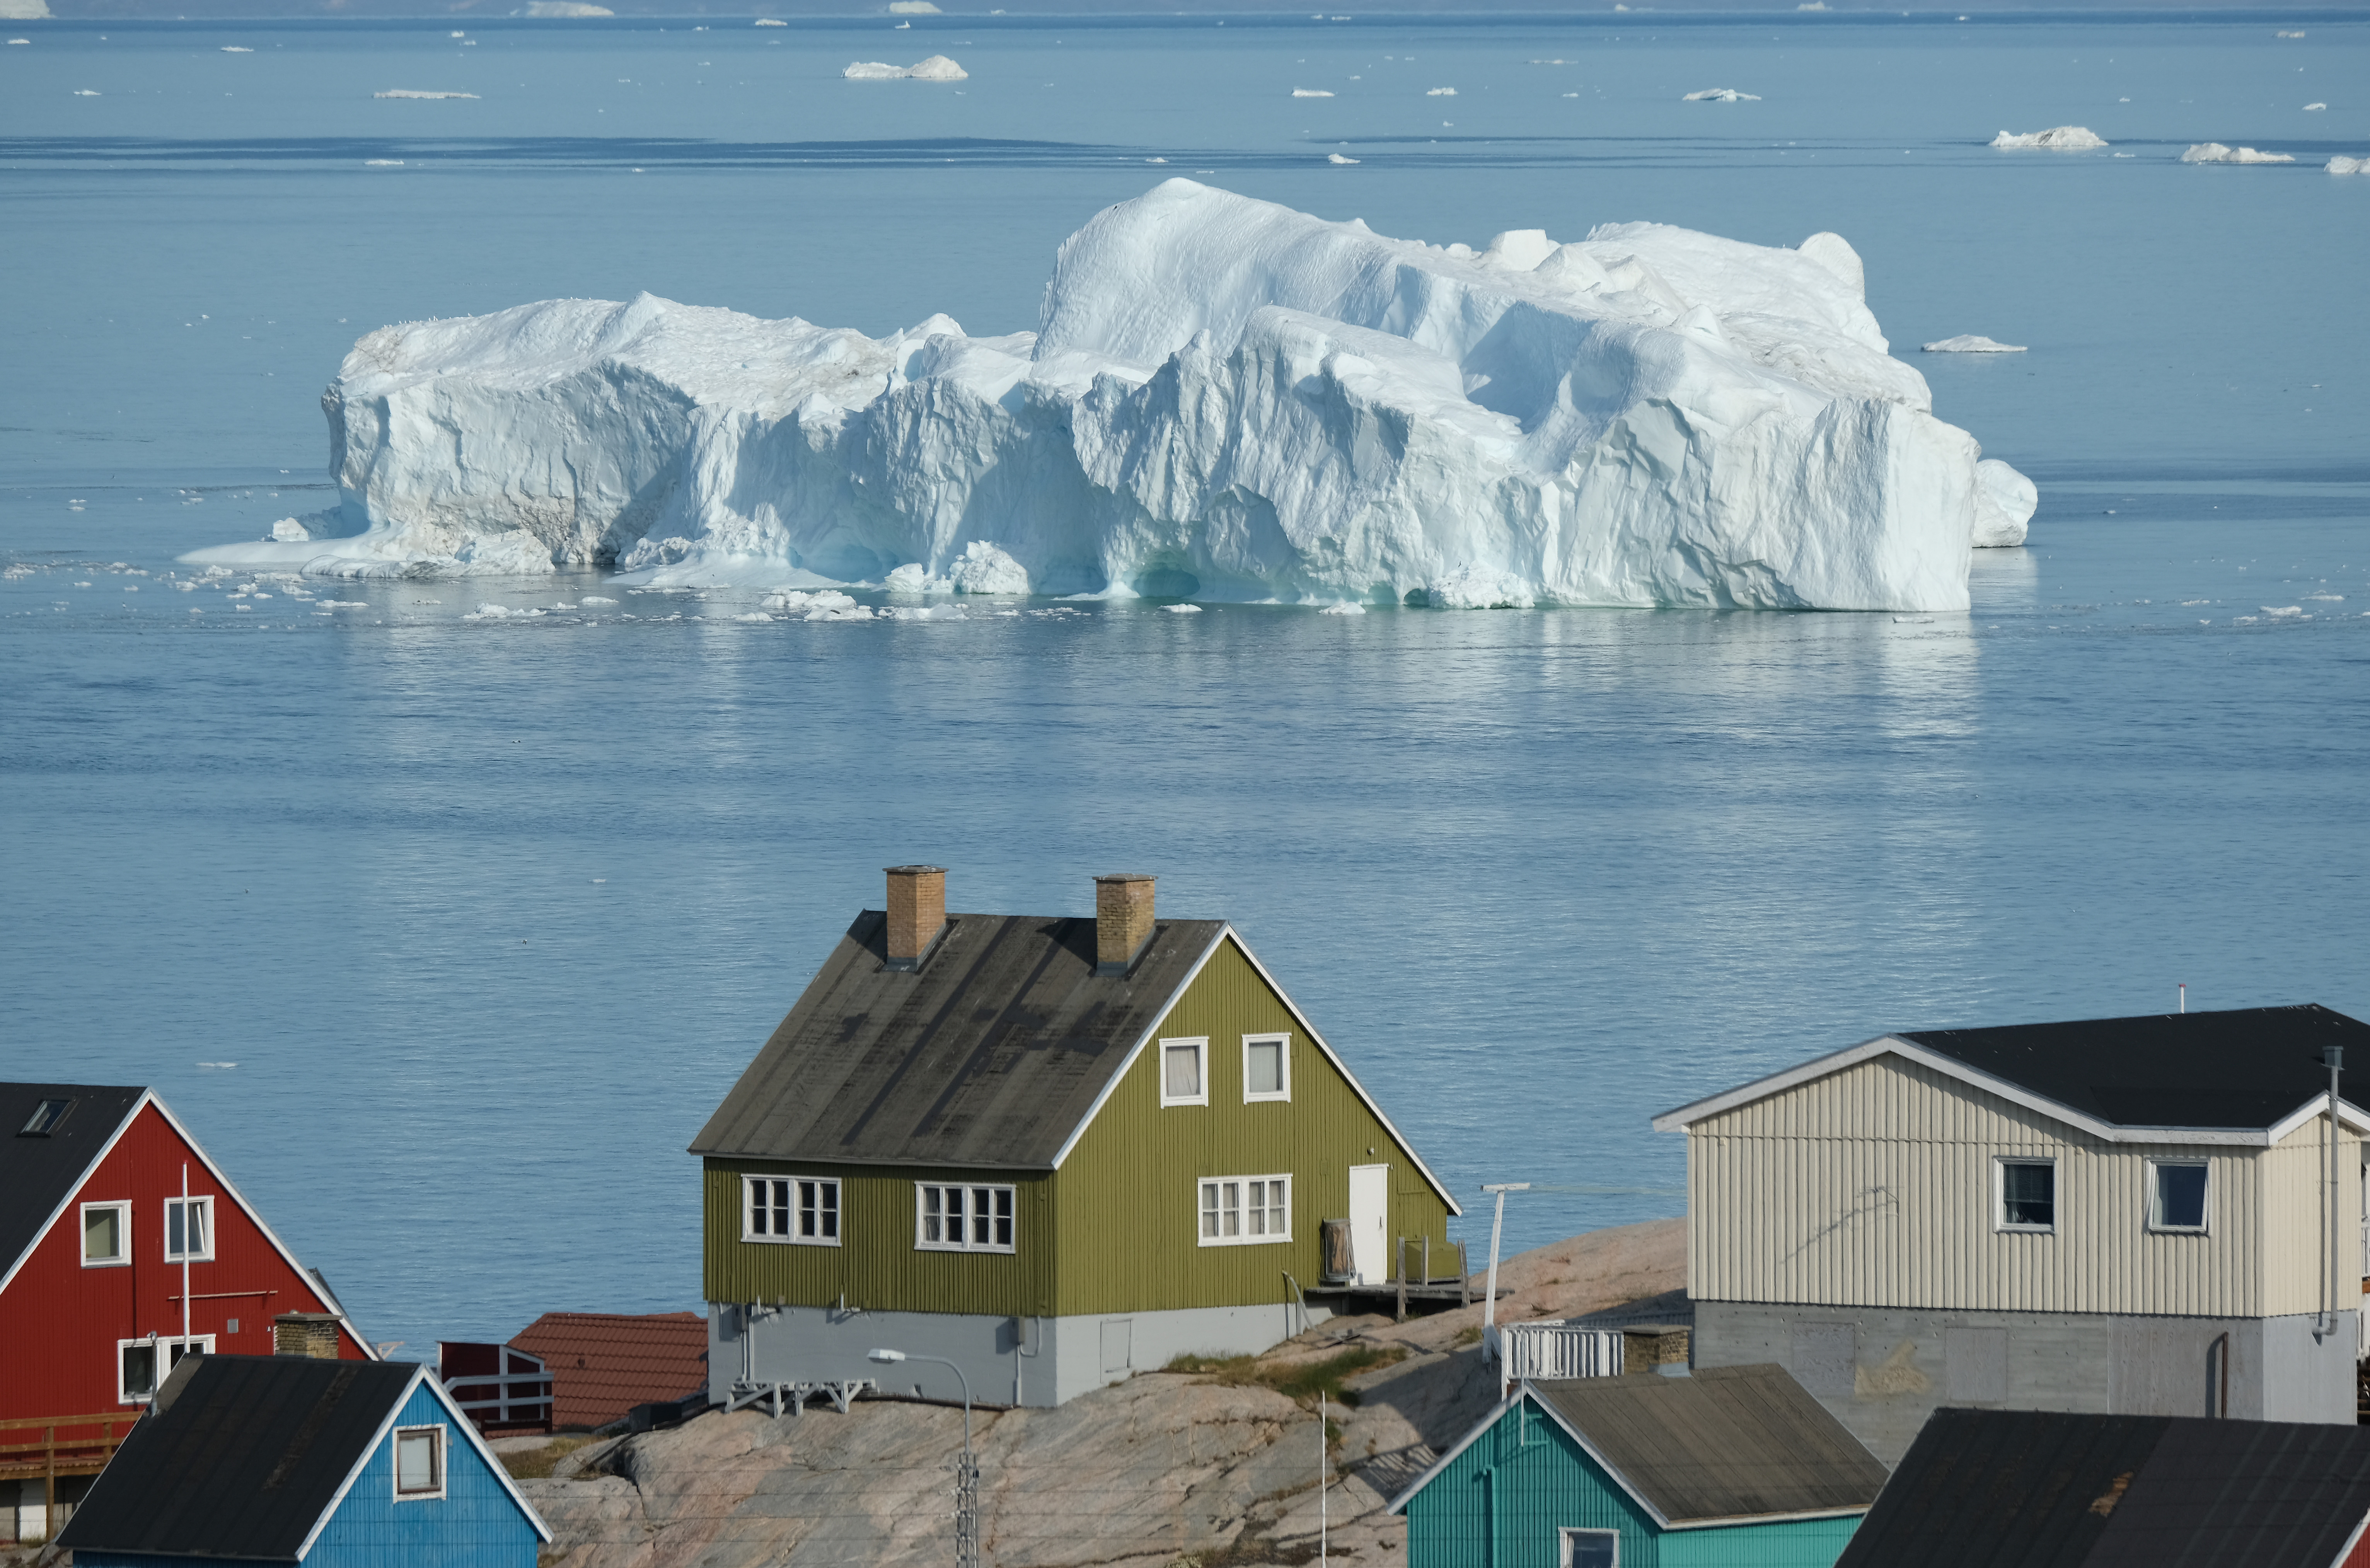 An iceberg floats in Disko Bay behind houses during unseasonably warm weather on July 30, 2019 in Ilulissat, Greenland. The Sahara heat wave that recently sent temperatures to record levels in parts of Europe is arriving in Greenland. Climate change is having a profound effect in Greenland, where over the last several decades summers have become longer and the rate that glaciers and the Greenland ice cap are retreating has accelerated. (Photo by Sean Gallup/Getty Images)